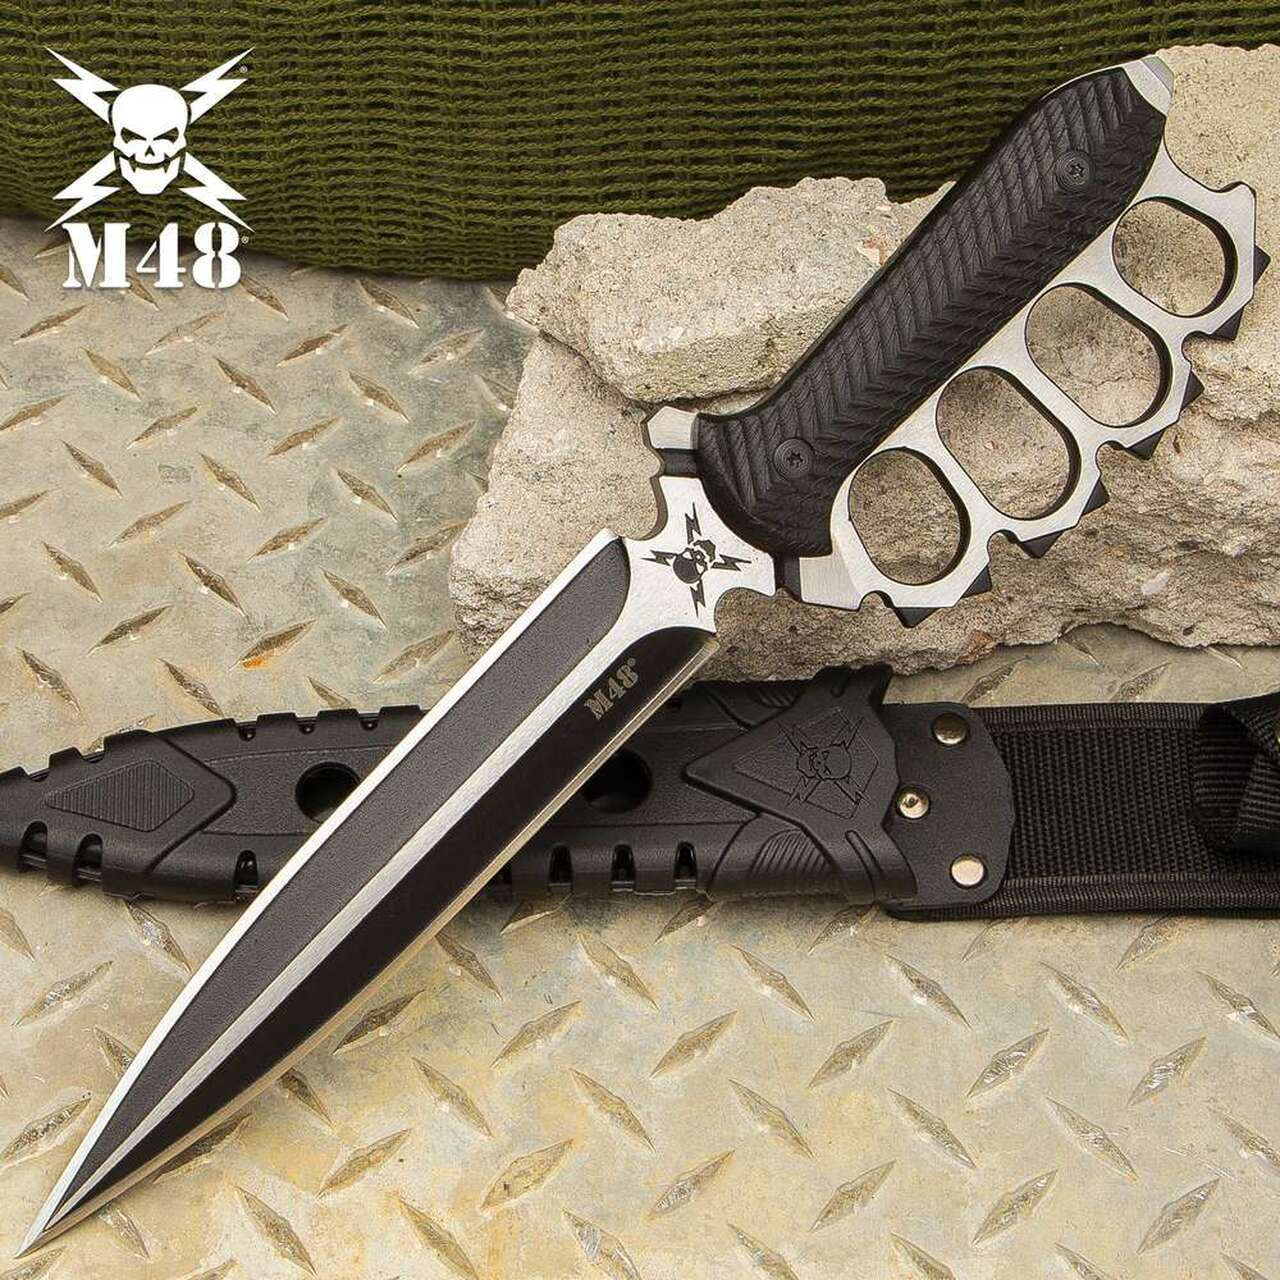 M48 Liberator Trench Knife With Sheath